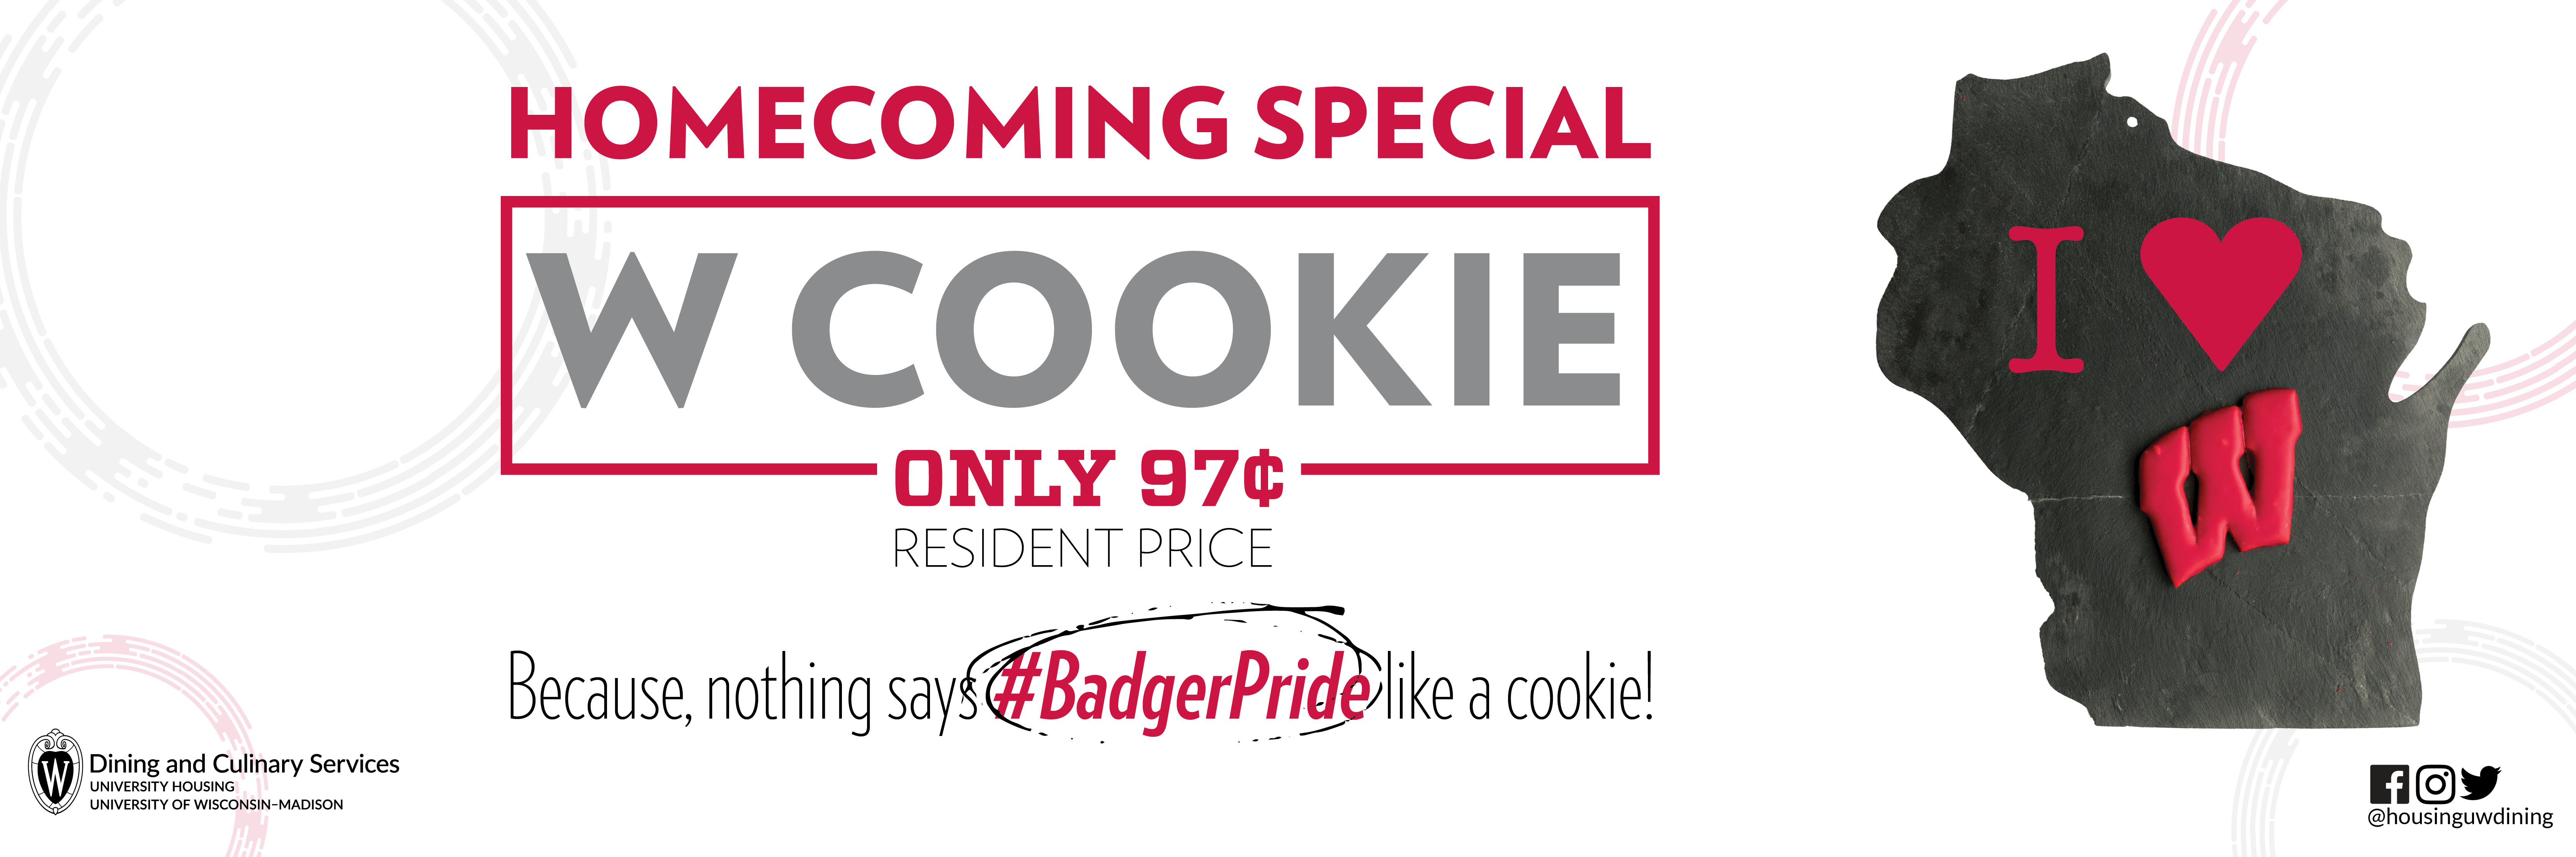 Homecoming Special, W Cookie only 97 cents (resident price). Because nothing says #BadgerPride like a cookie!